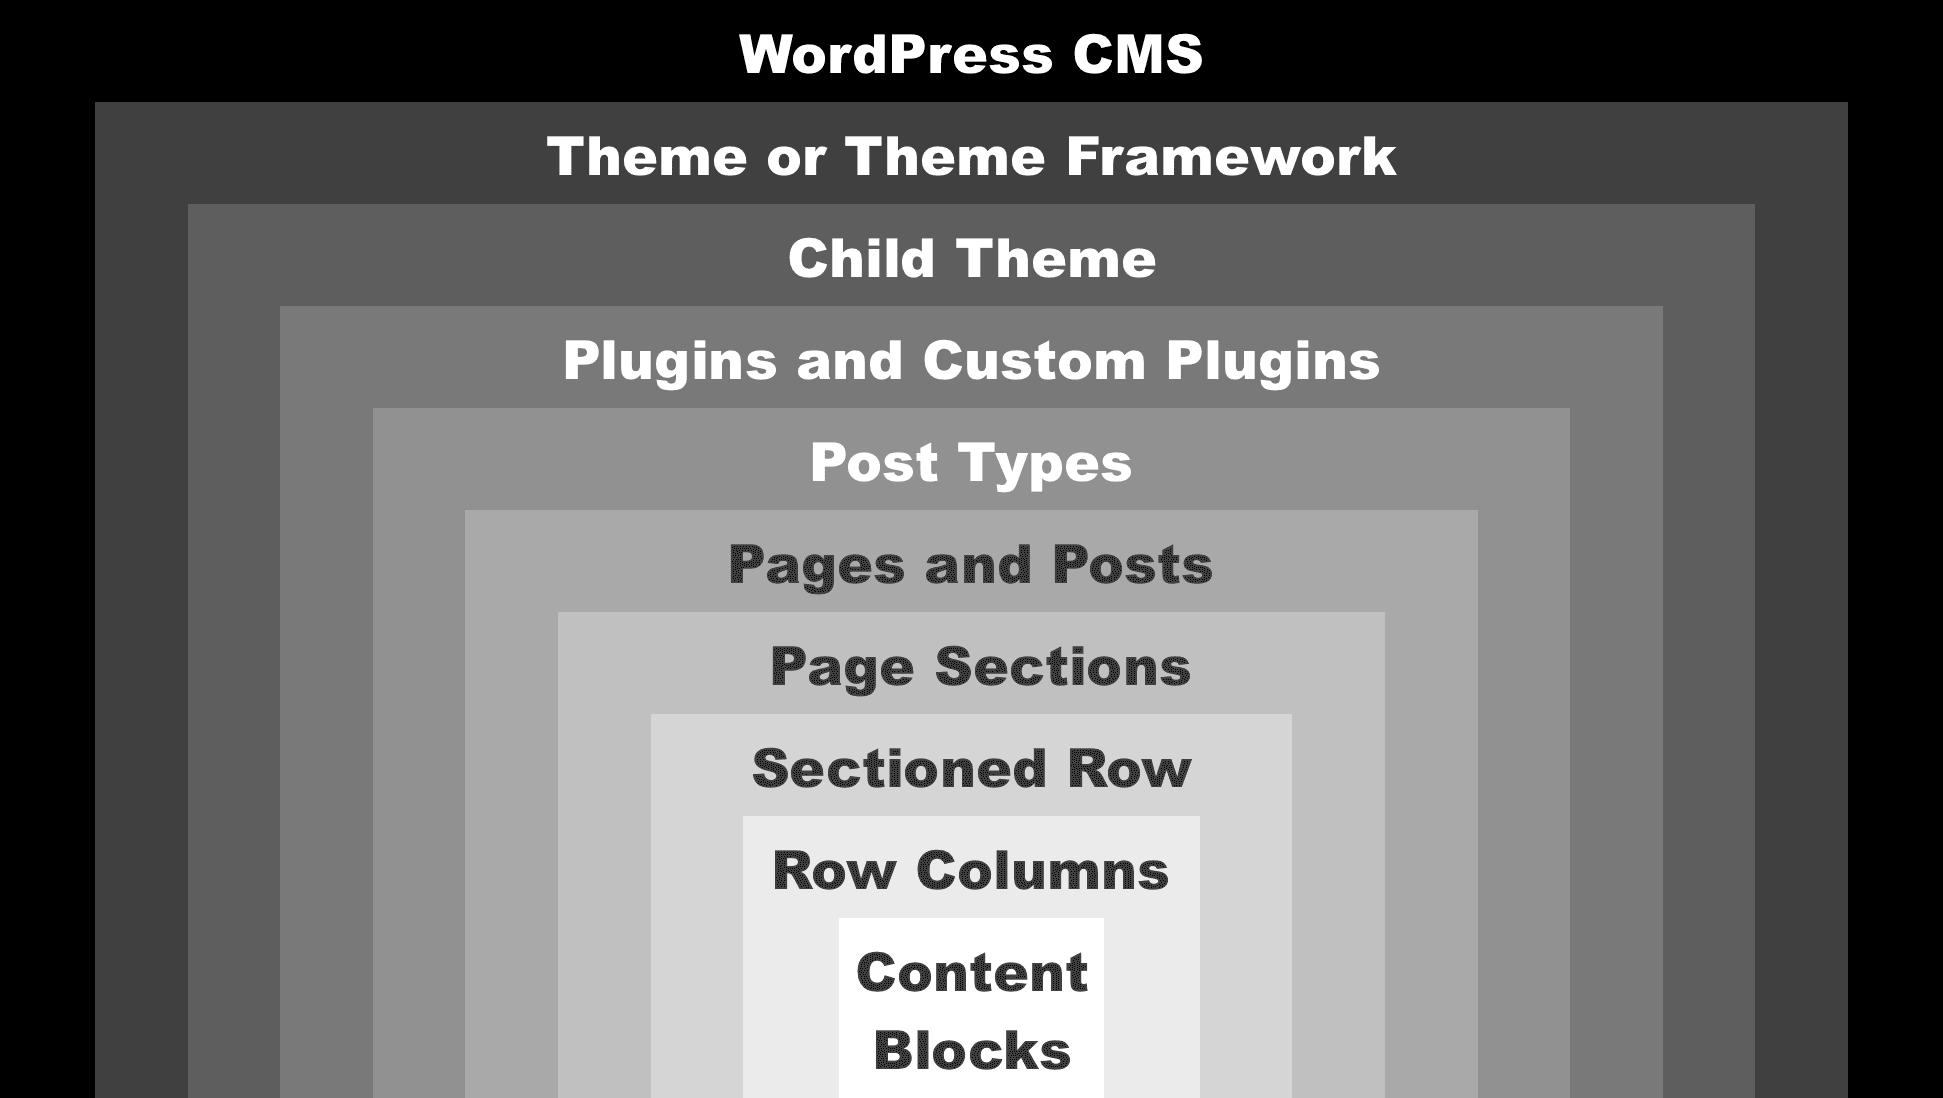 Hierarchy showing WordPress content breakdowns